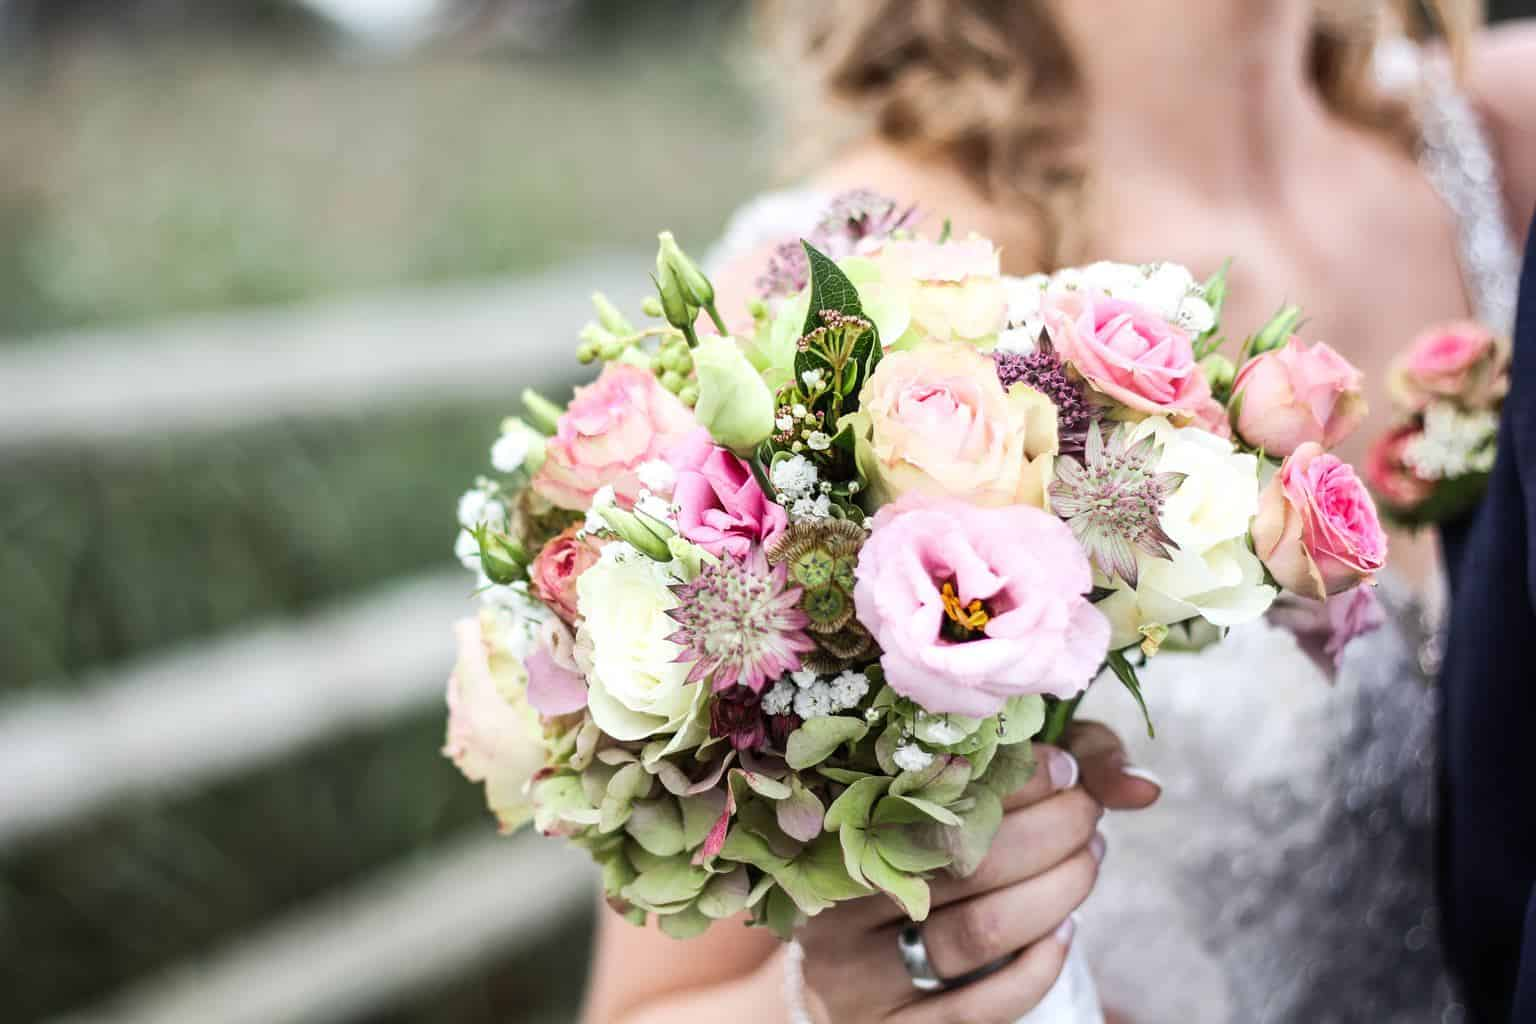 why do brides throw the bouquet